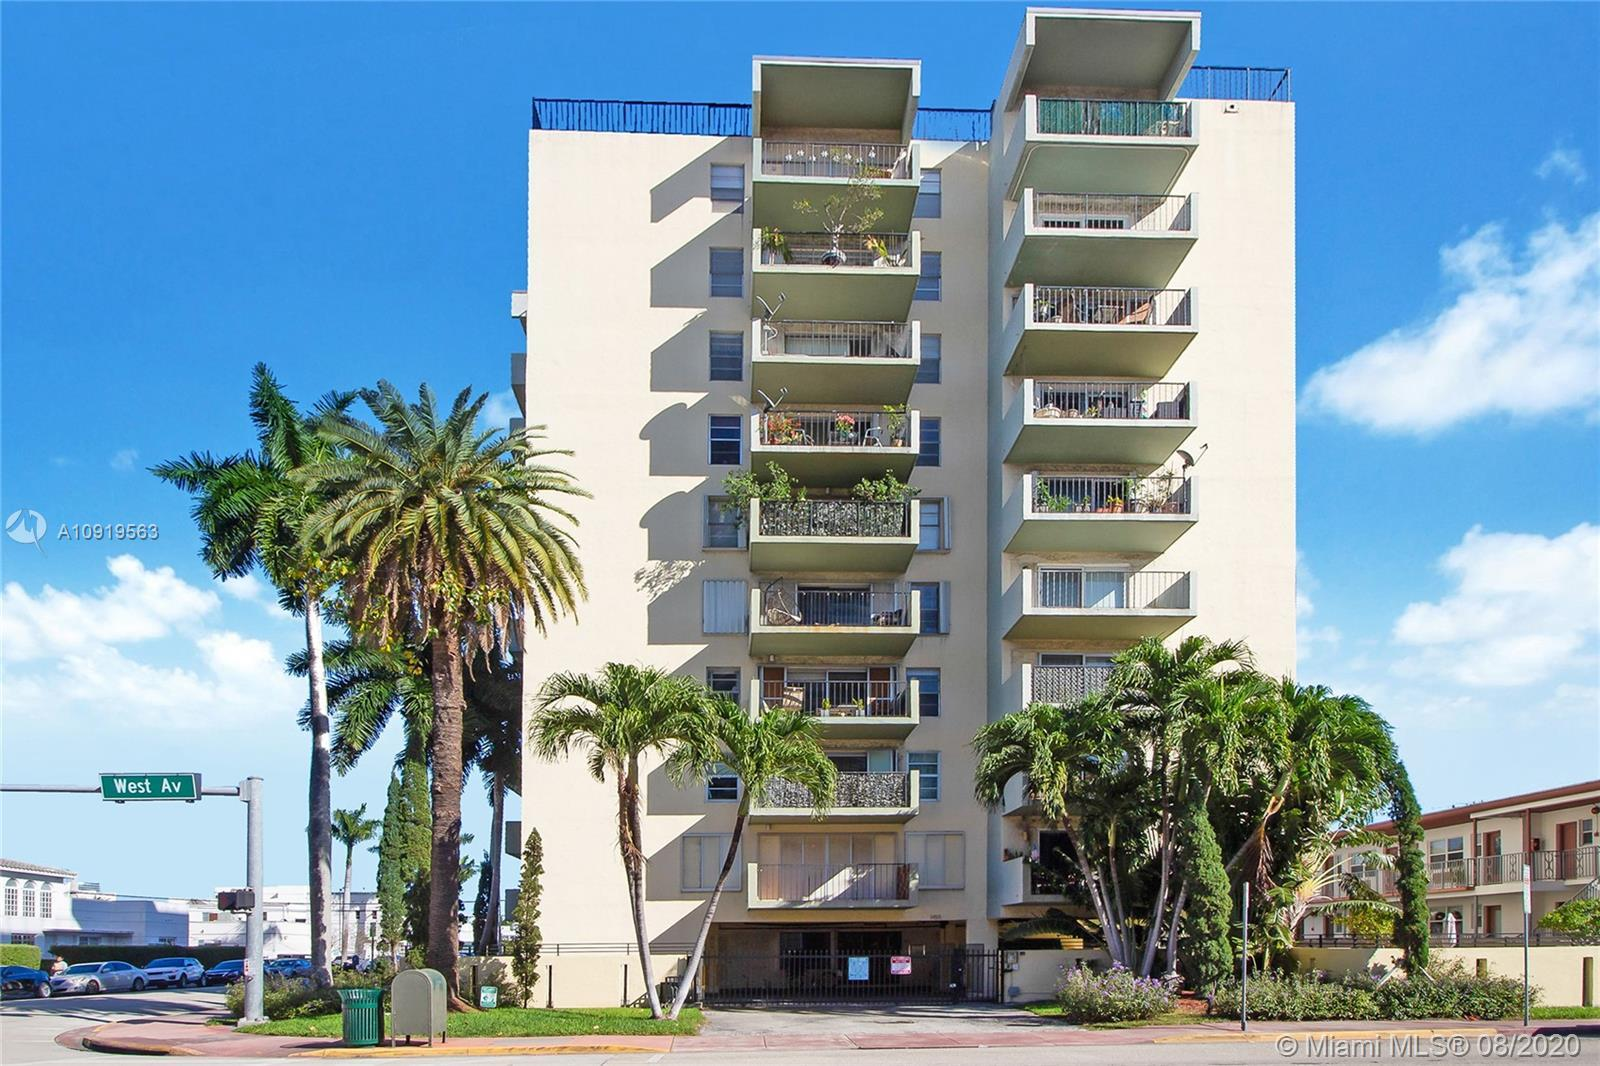 Beautiful and spacious 1 bedroom + den./1.5 bathroom in South Beach! Only 4 units per floor. Enough